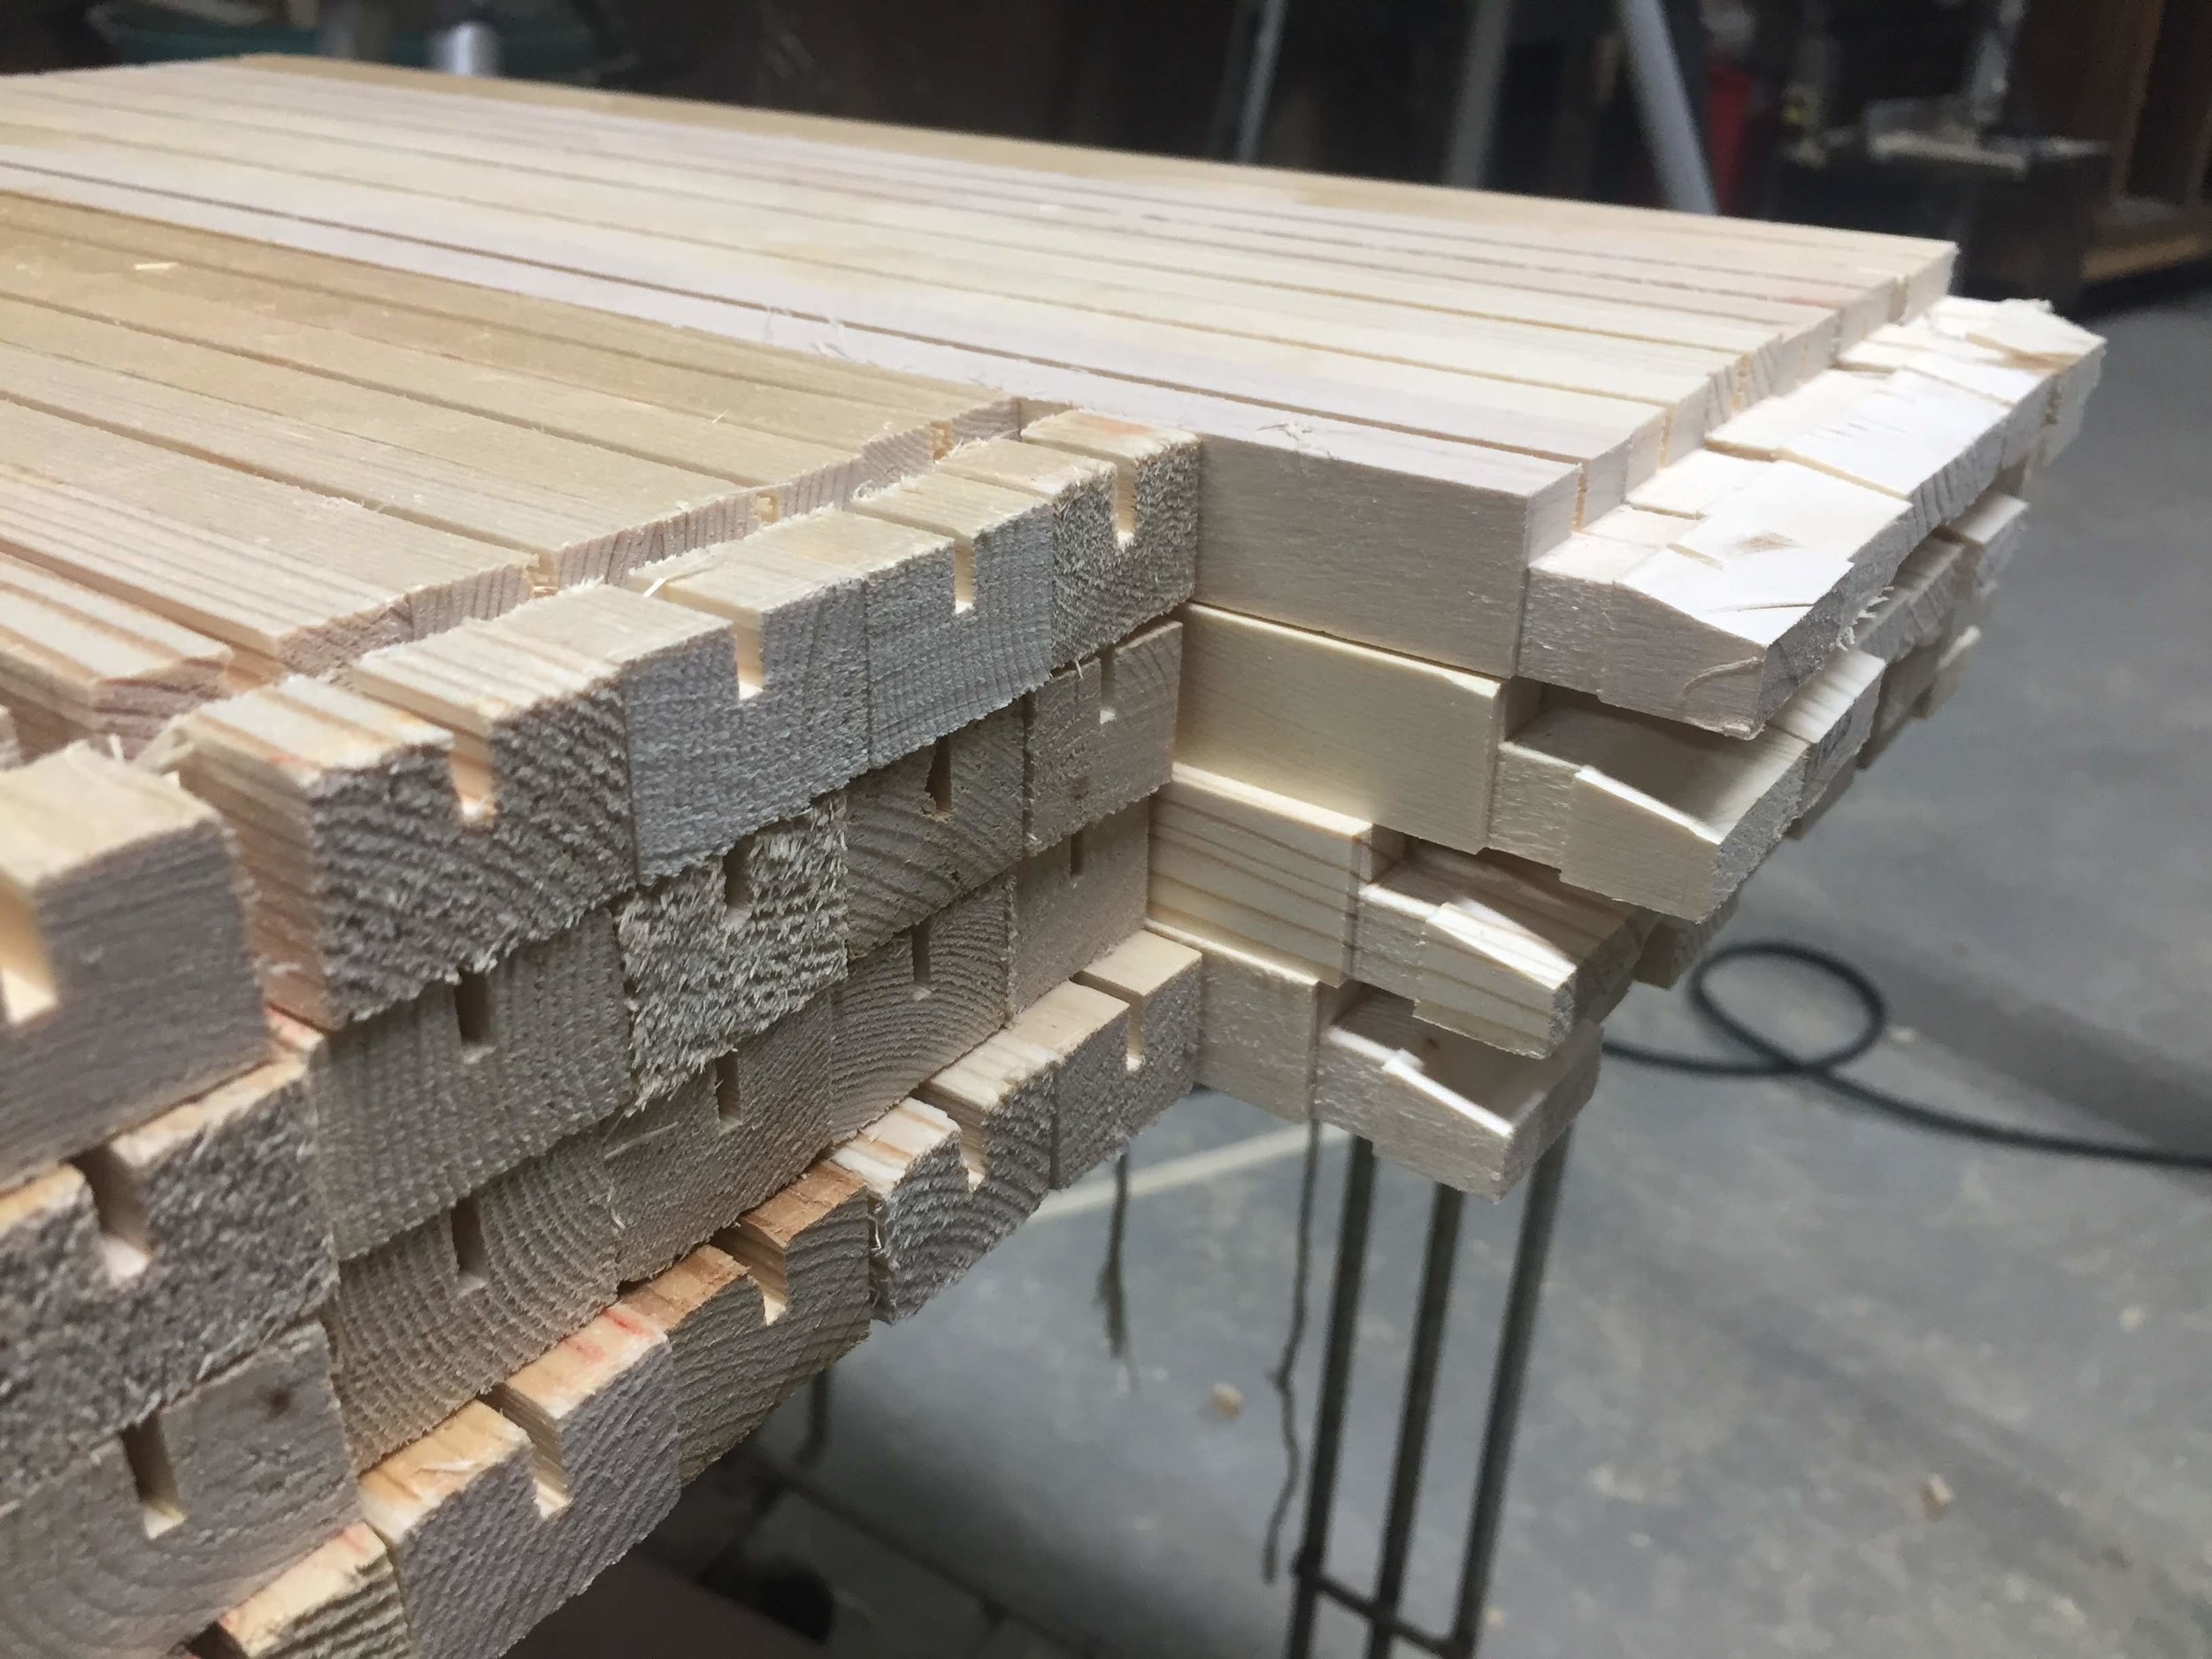 Cut more pieces then you need when making frames. Work in Progress.